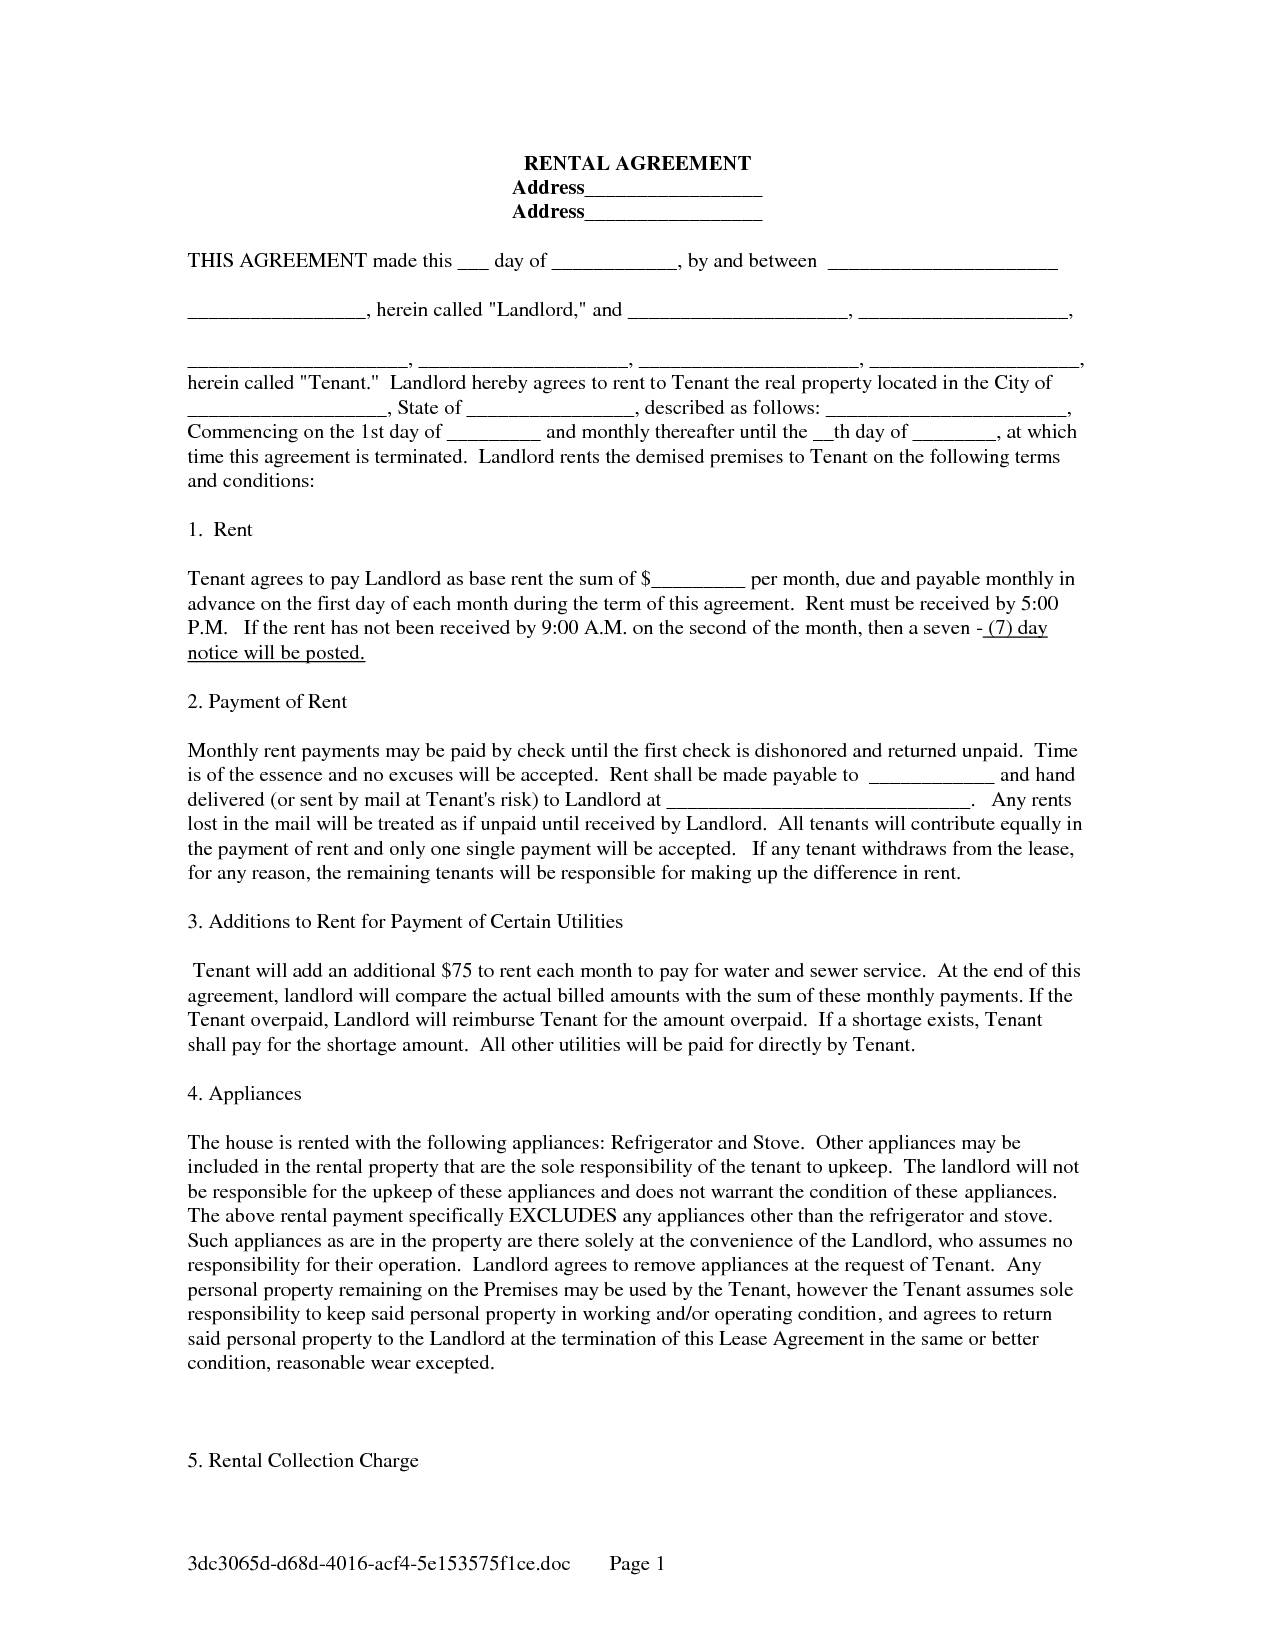 Land Rental Agreement Forms